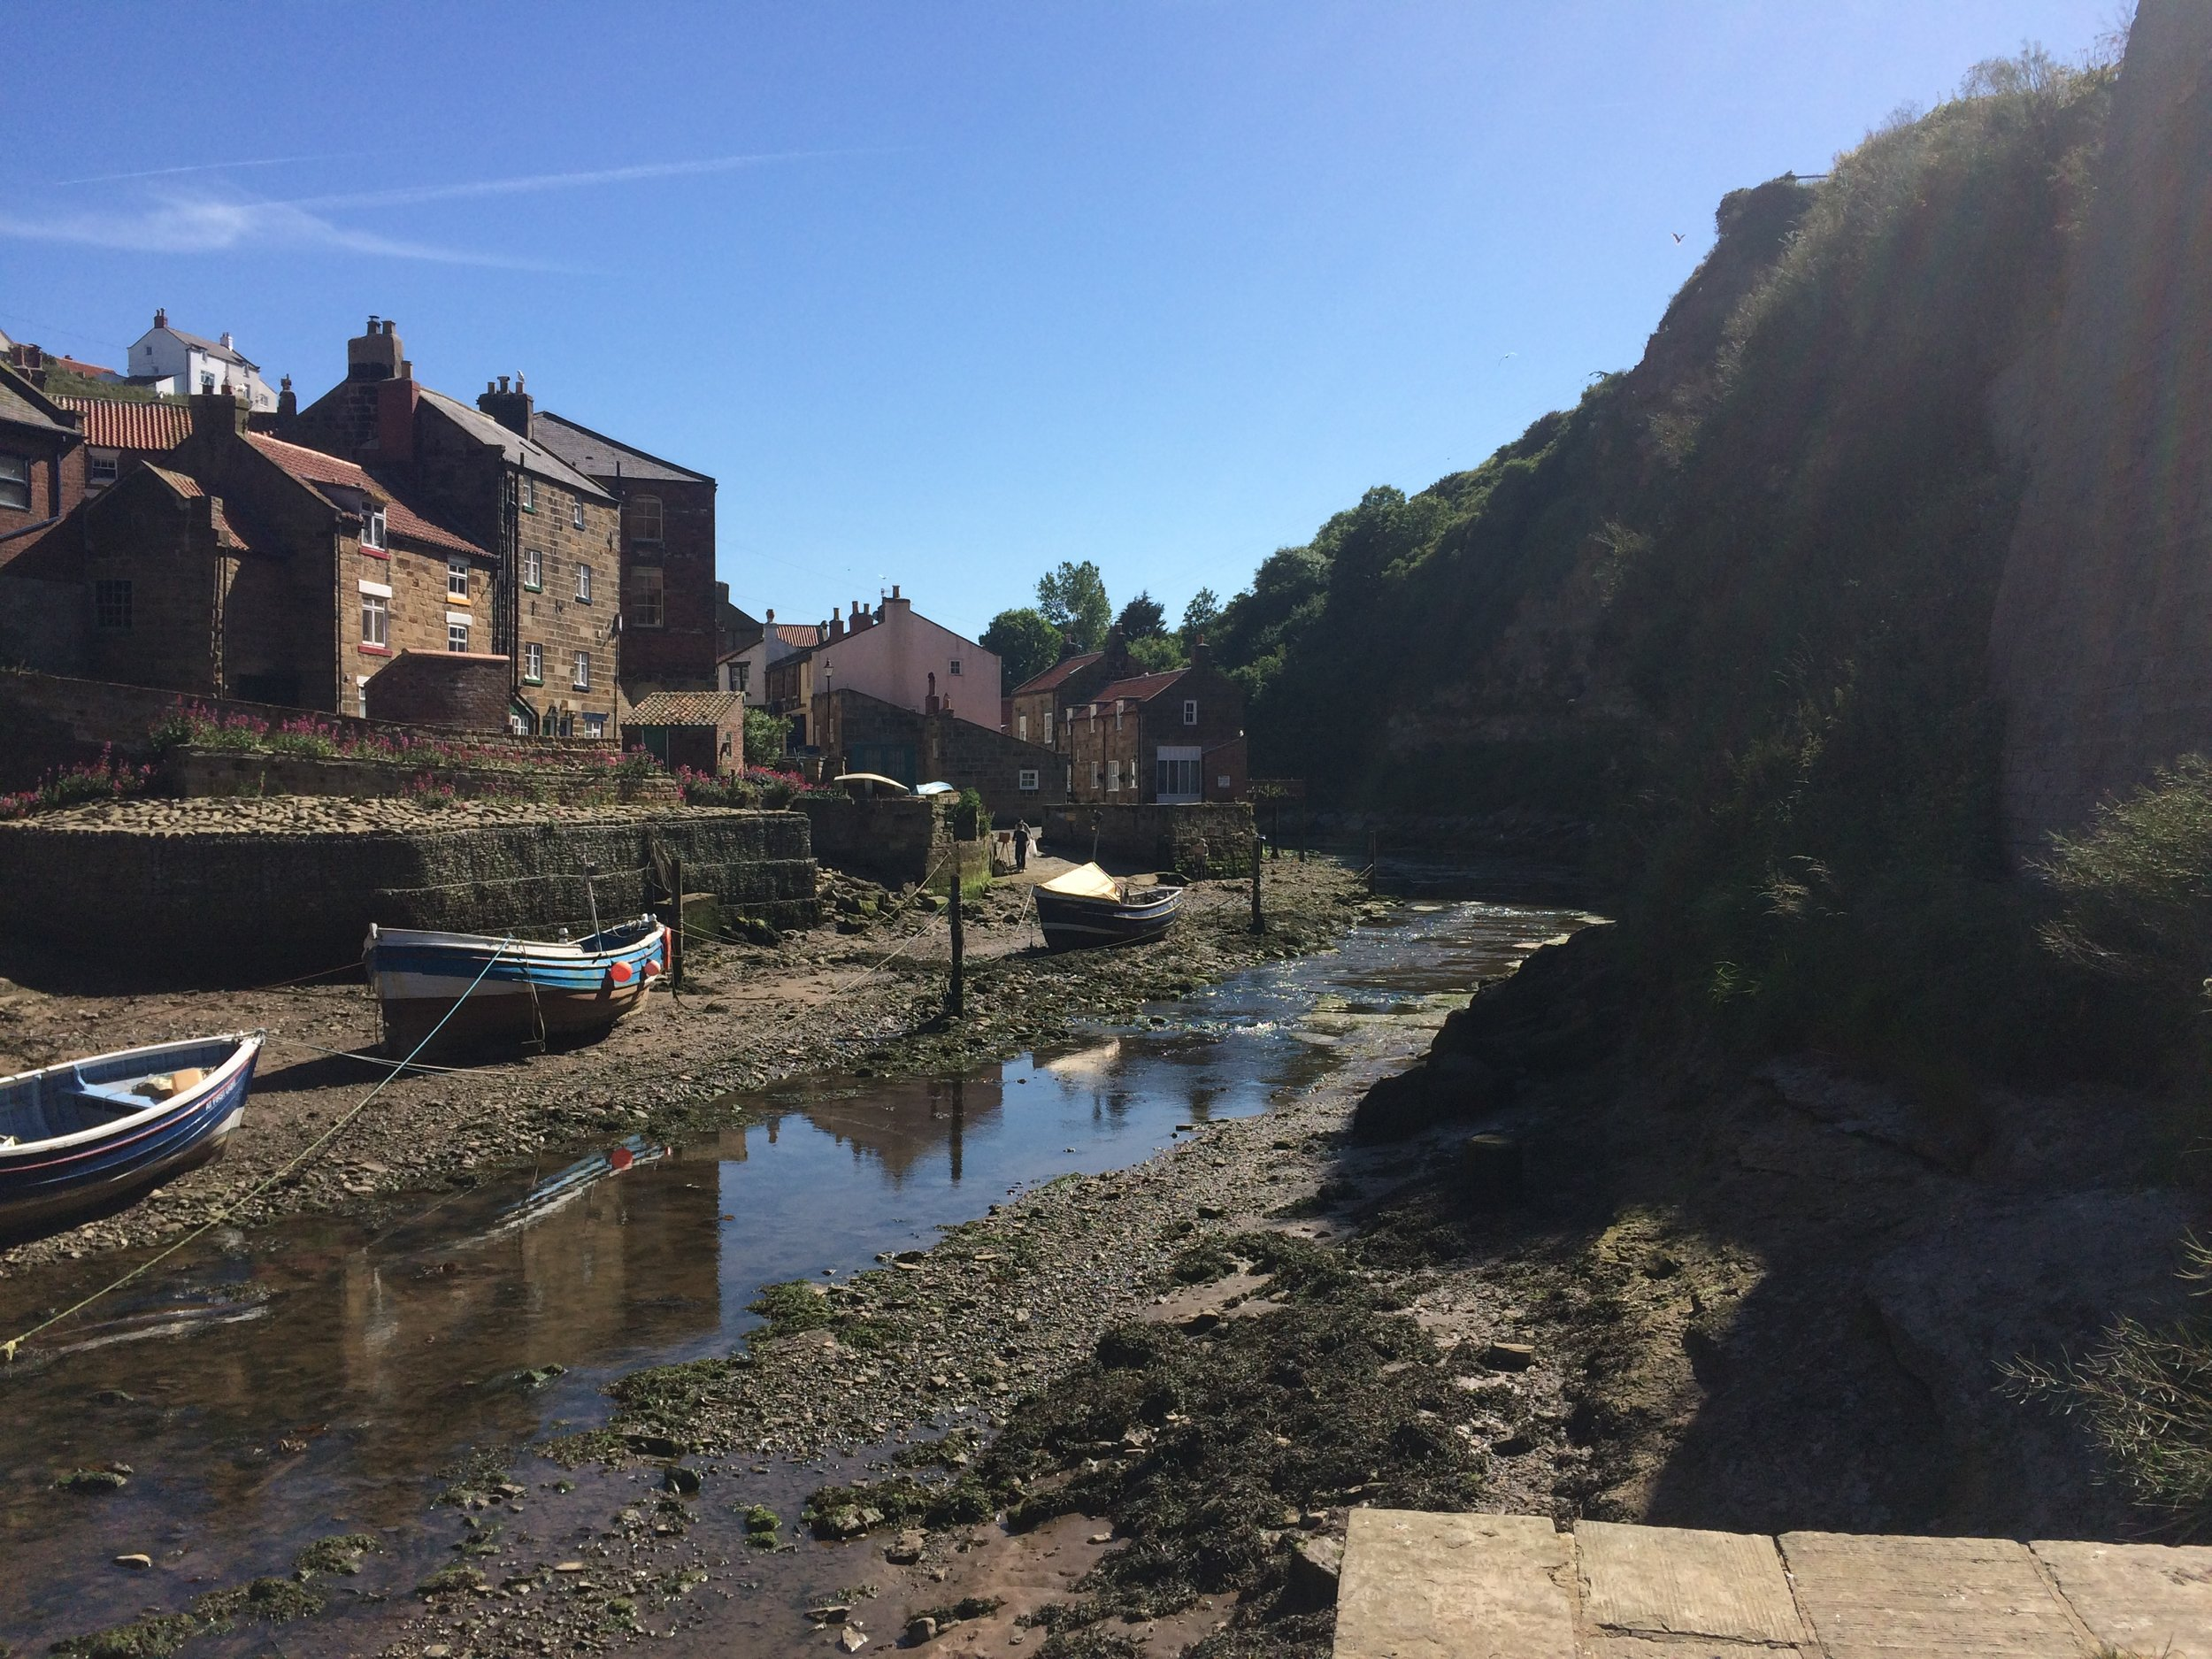 Down by the Beck in Staithes.